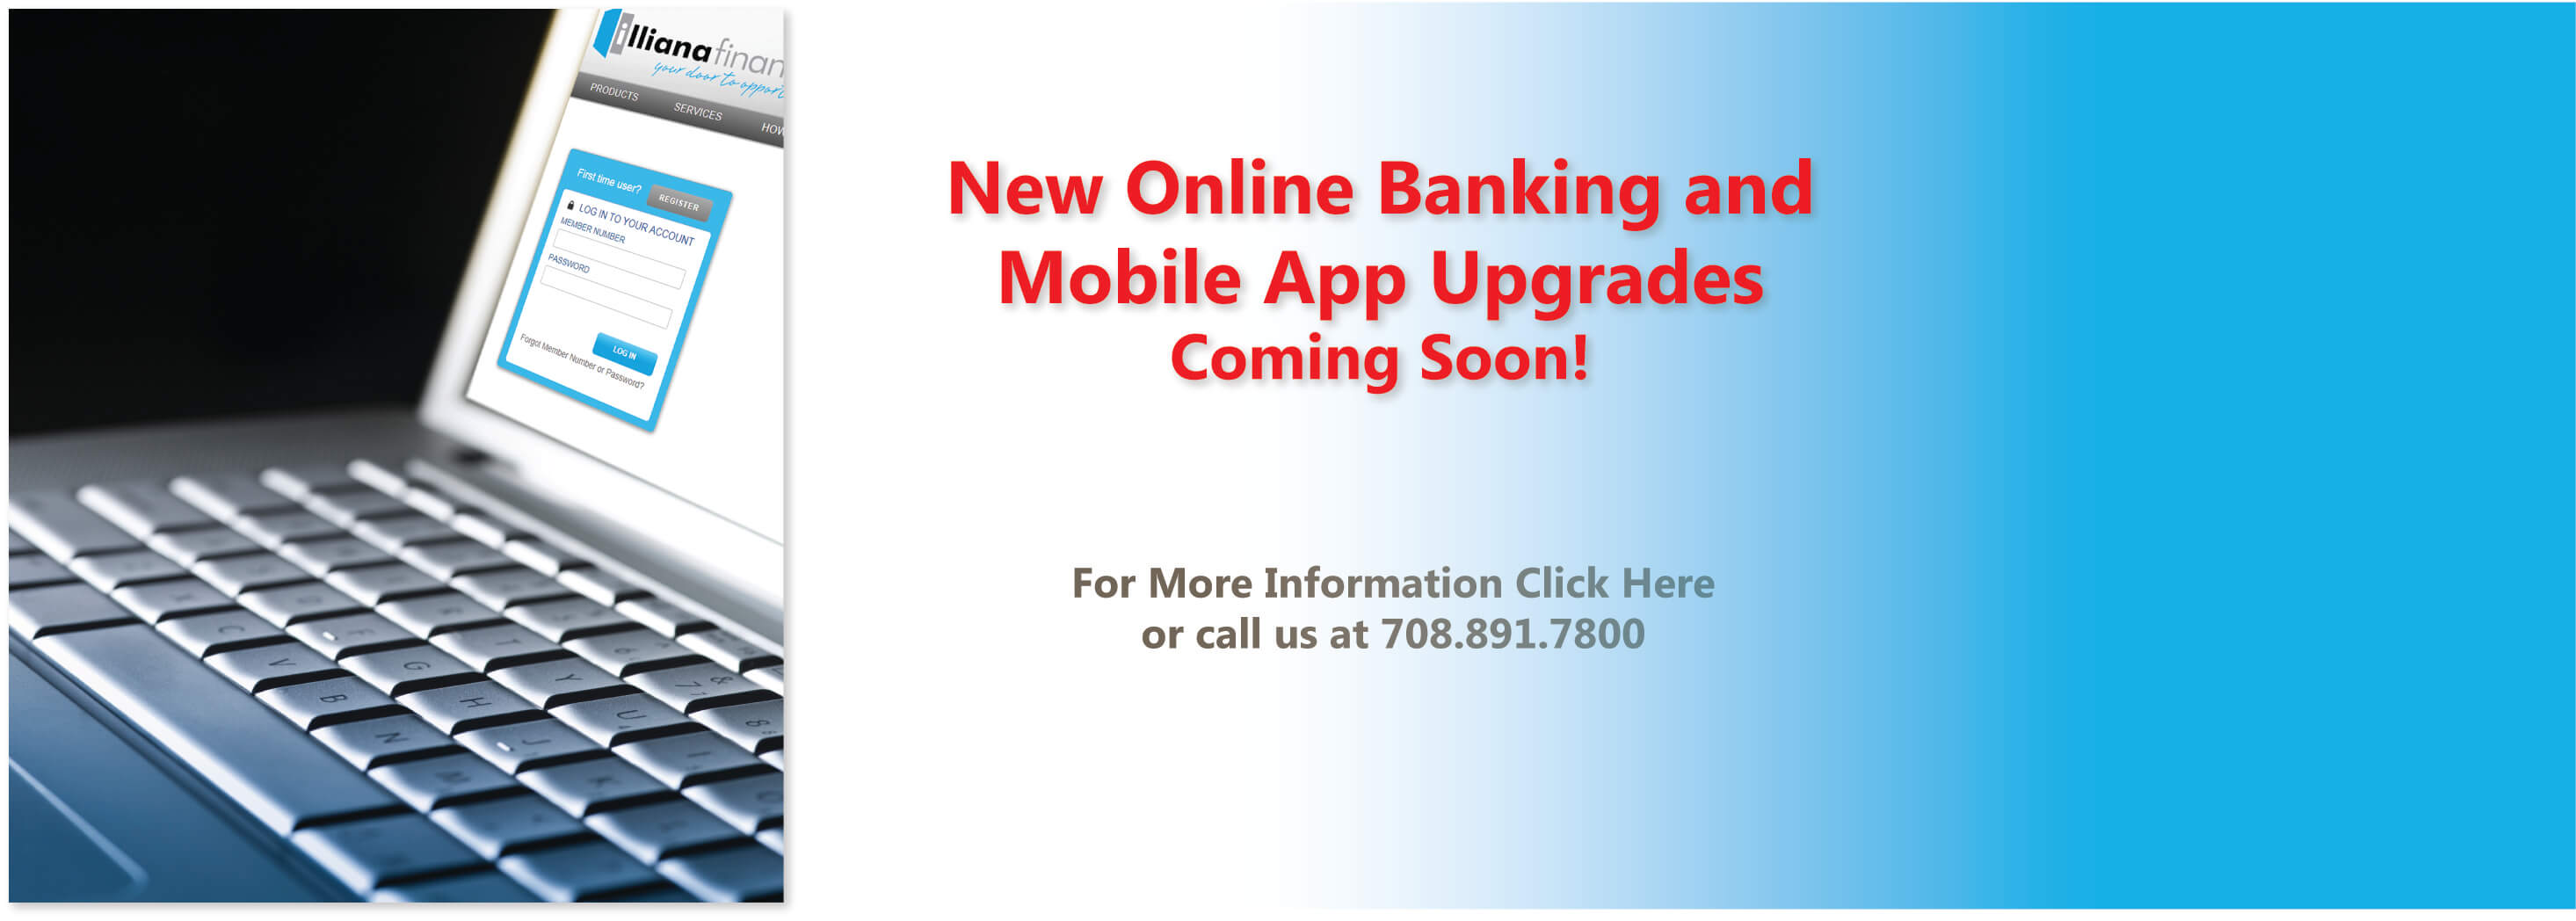 New Online Banking and Mobile App Upgrades